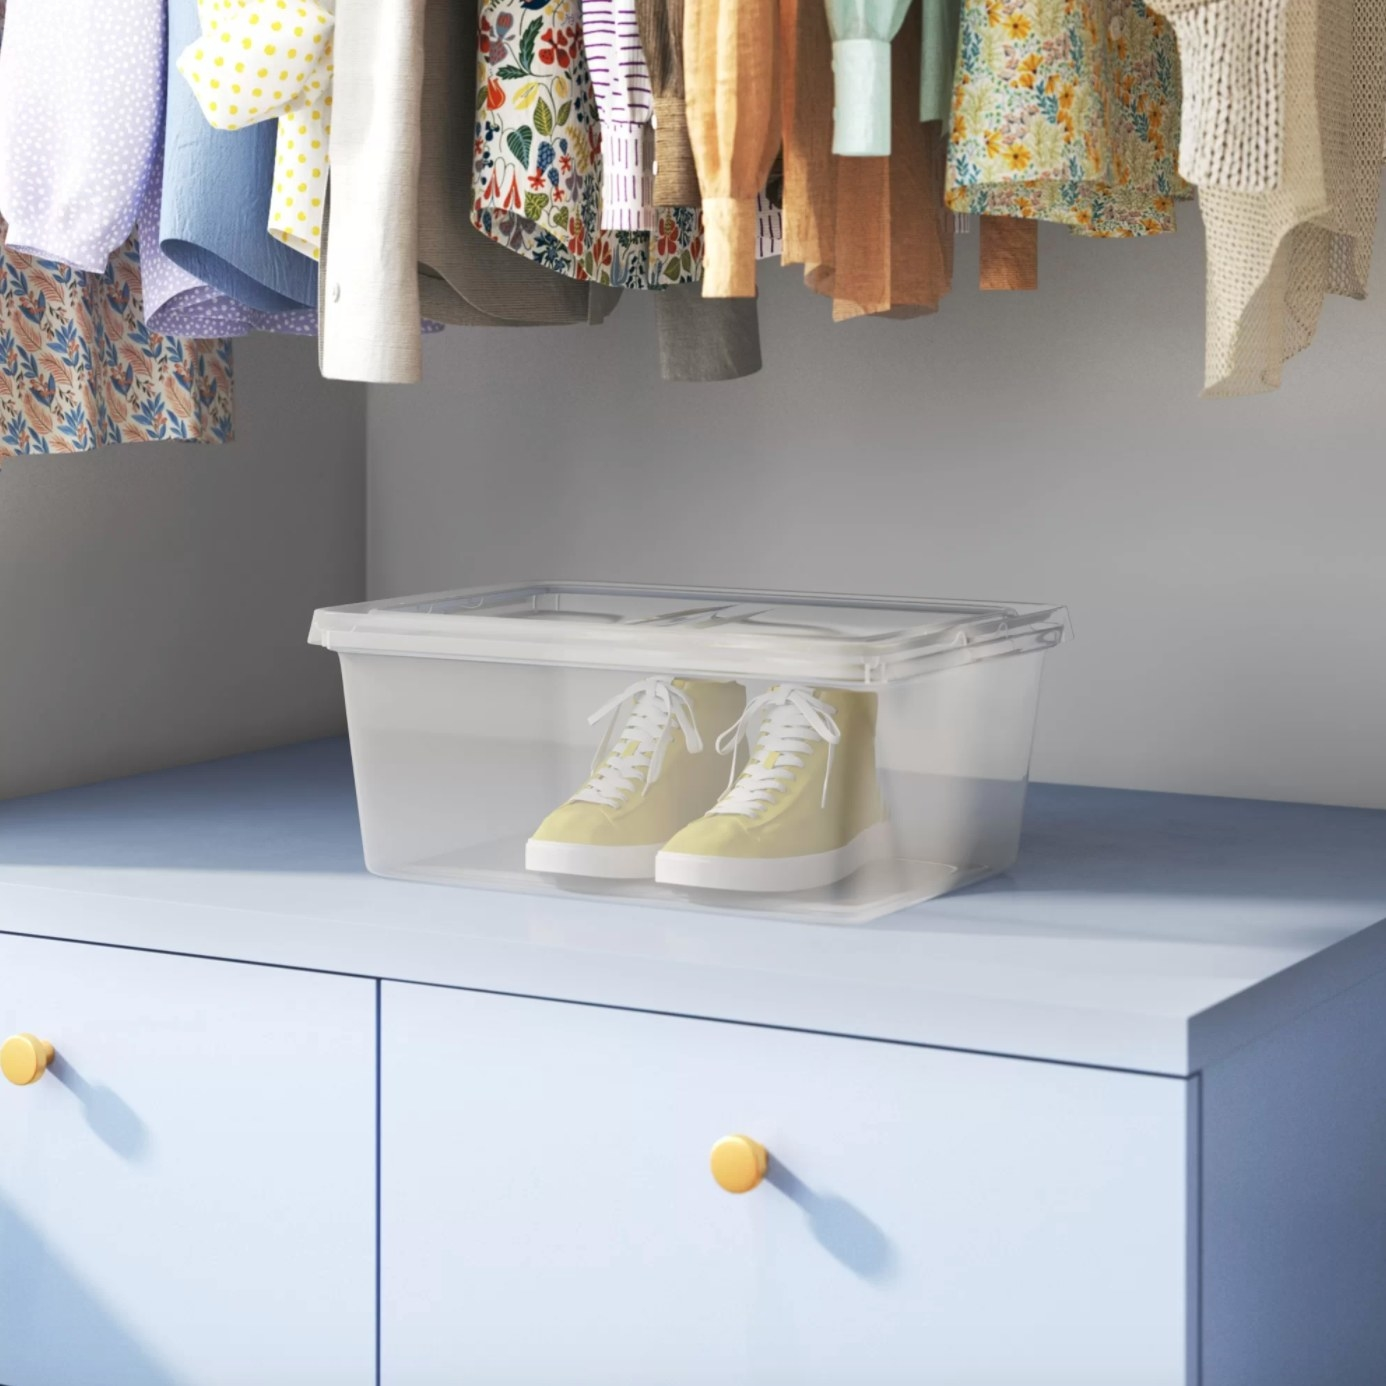 The plastic storage tub holding sneakers